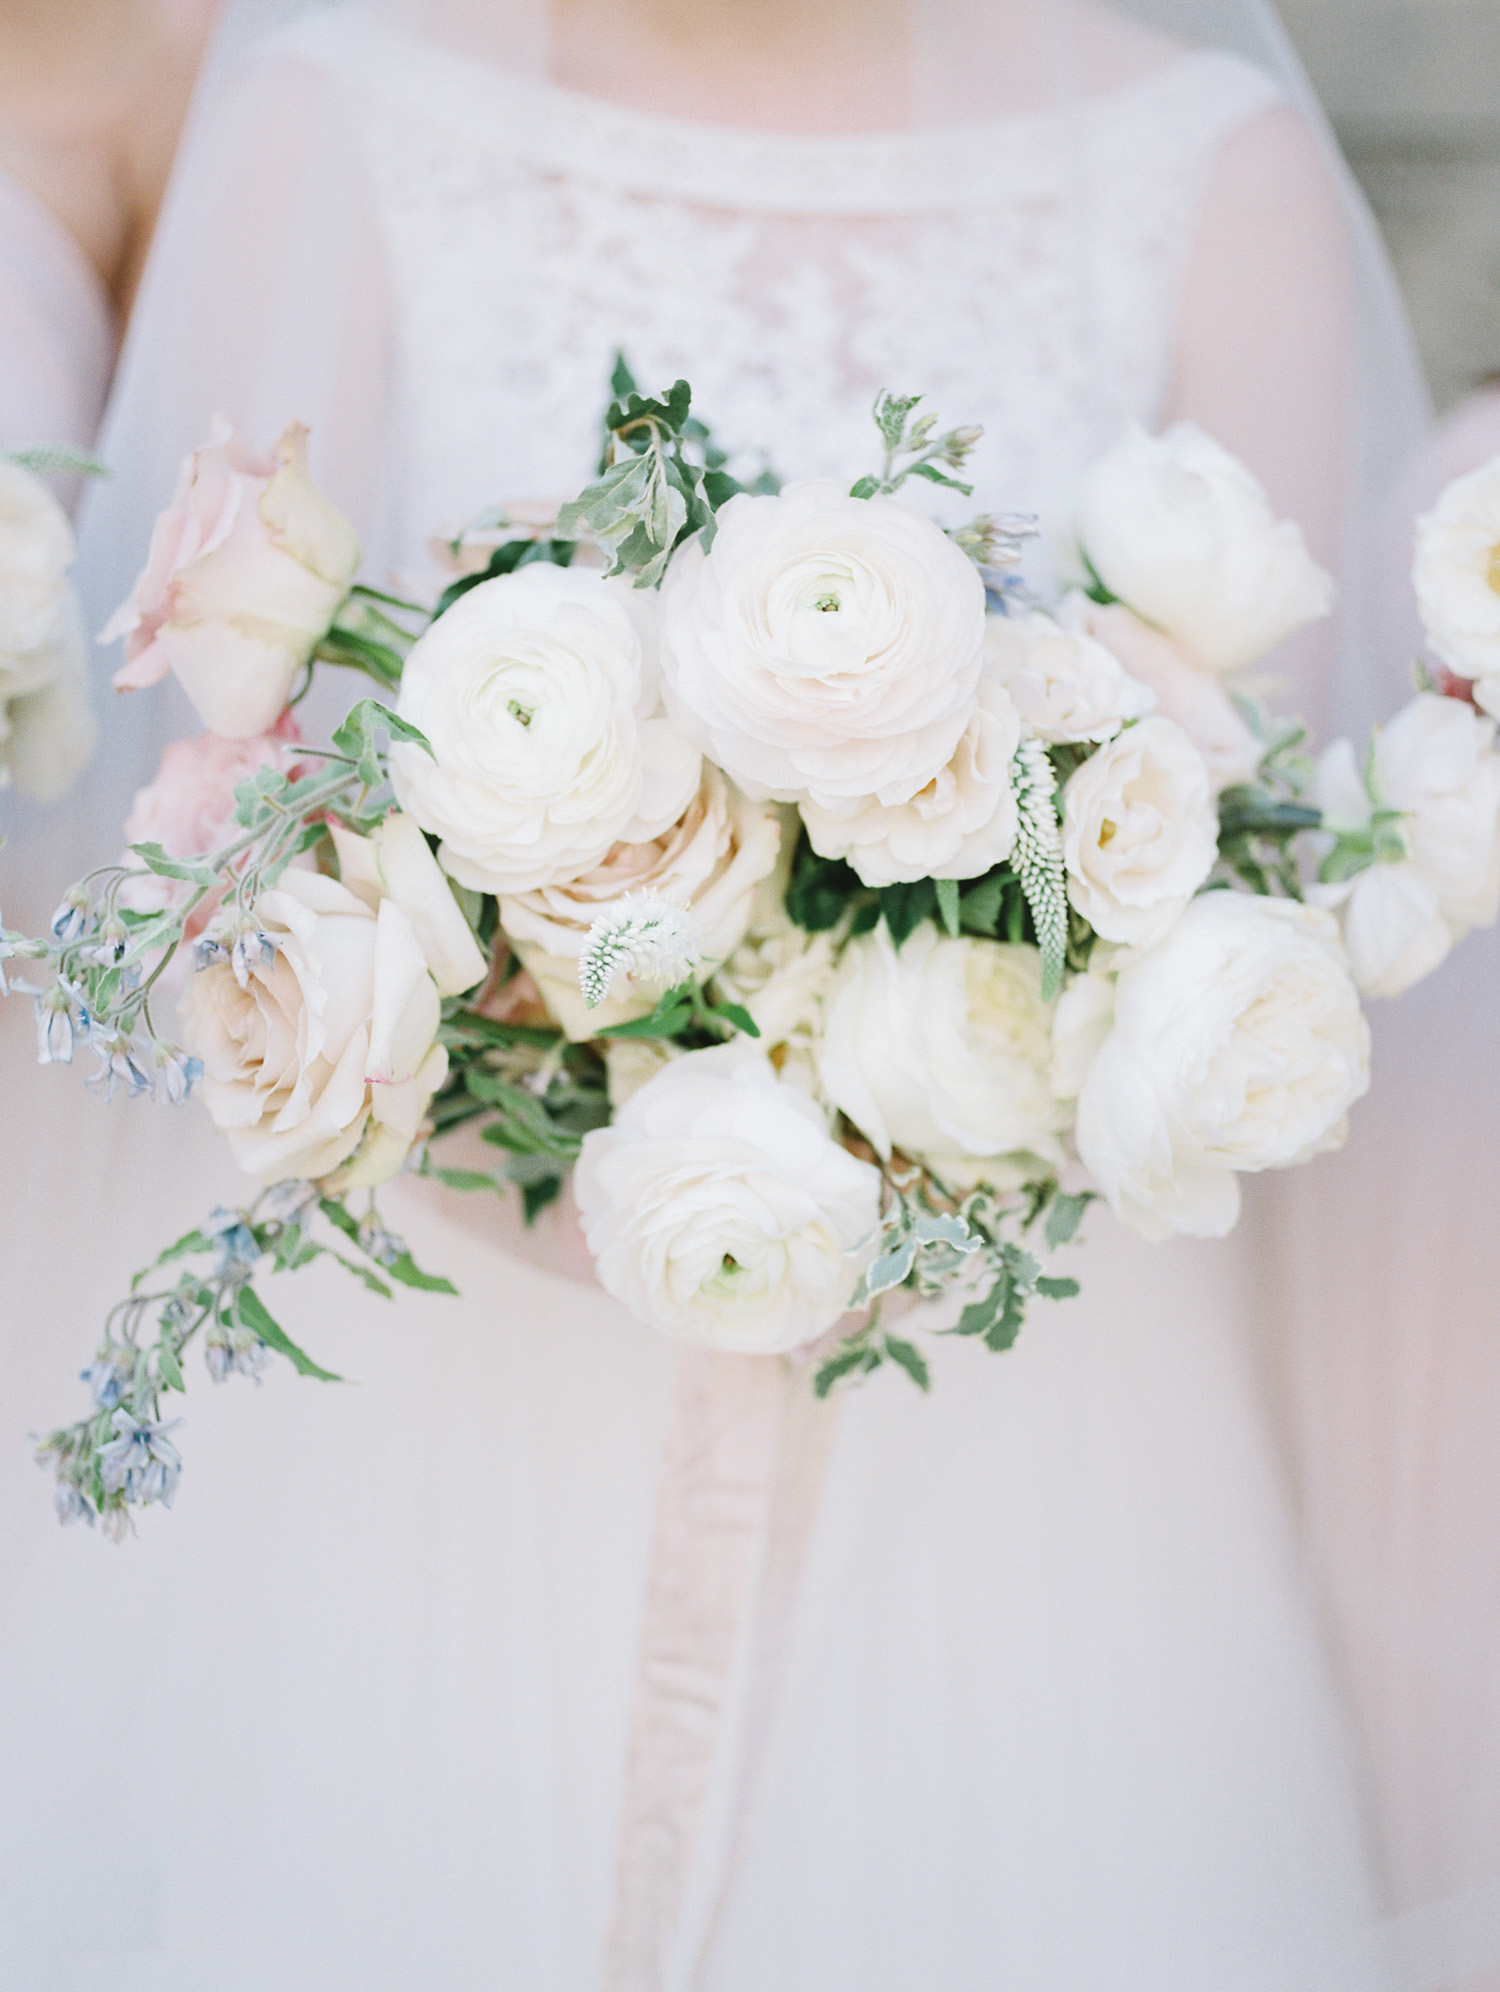 A lush bridal bouquet with white ranunculus, blush garden roses, and trailing silk ribbon by Detroit film wedding photographer Christina Harrison